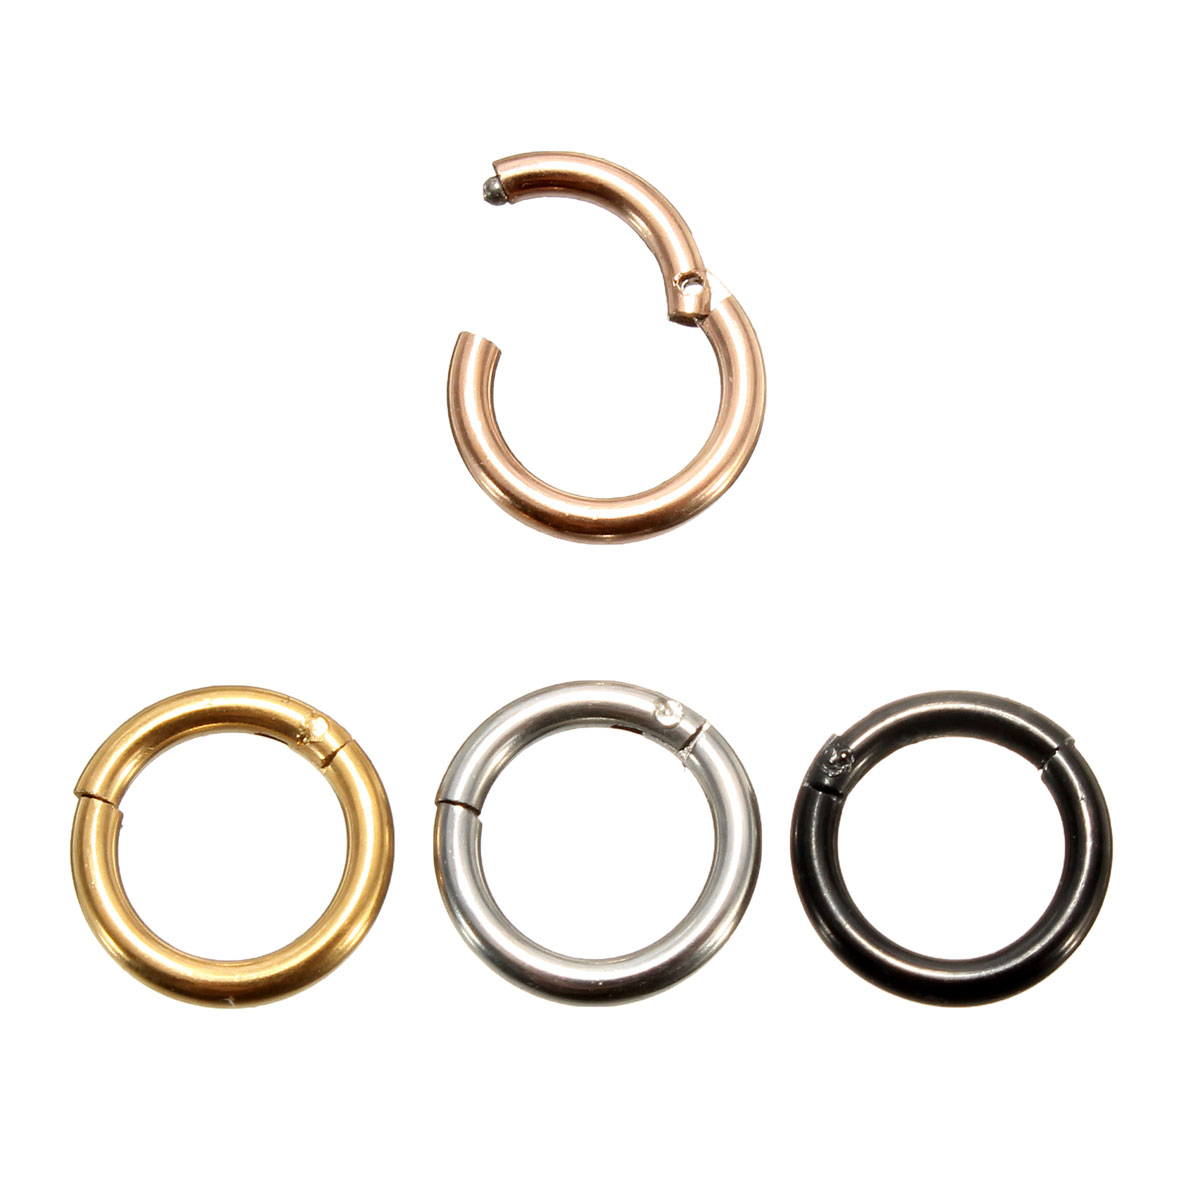 8mm Stainless Steel Hoop Ring Ear Lip Nose Septum Segment Body Jewelry